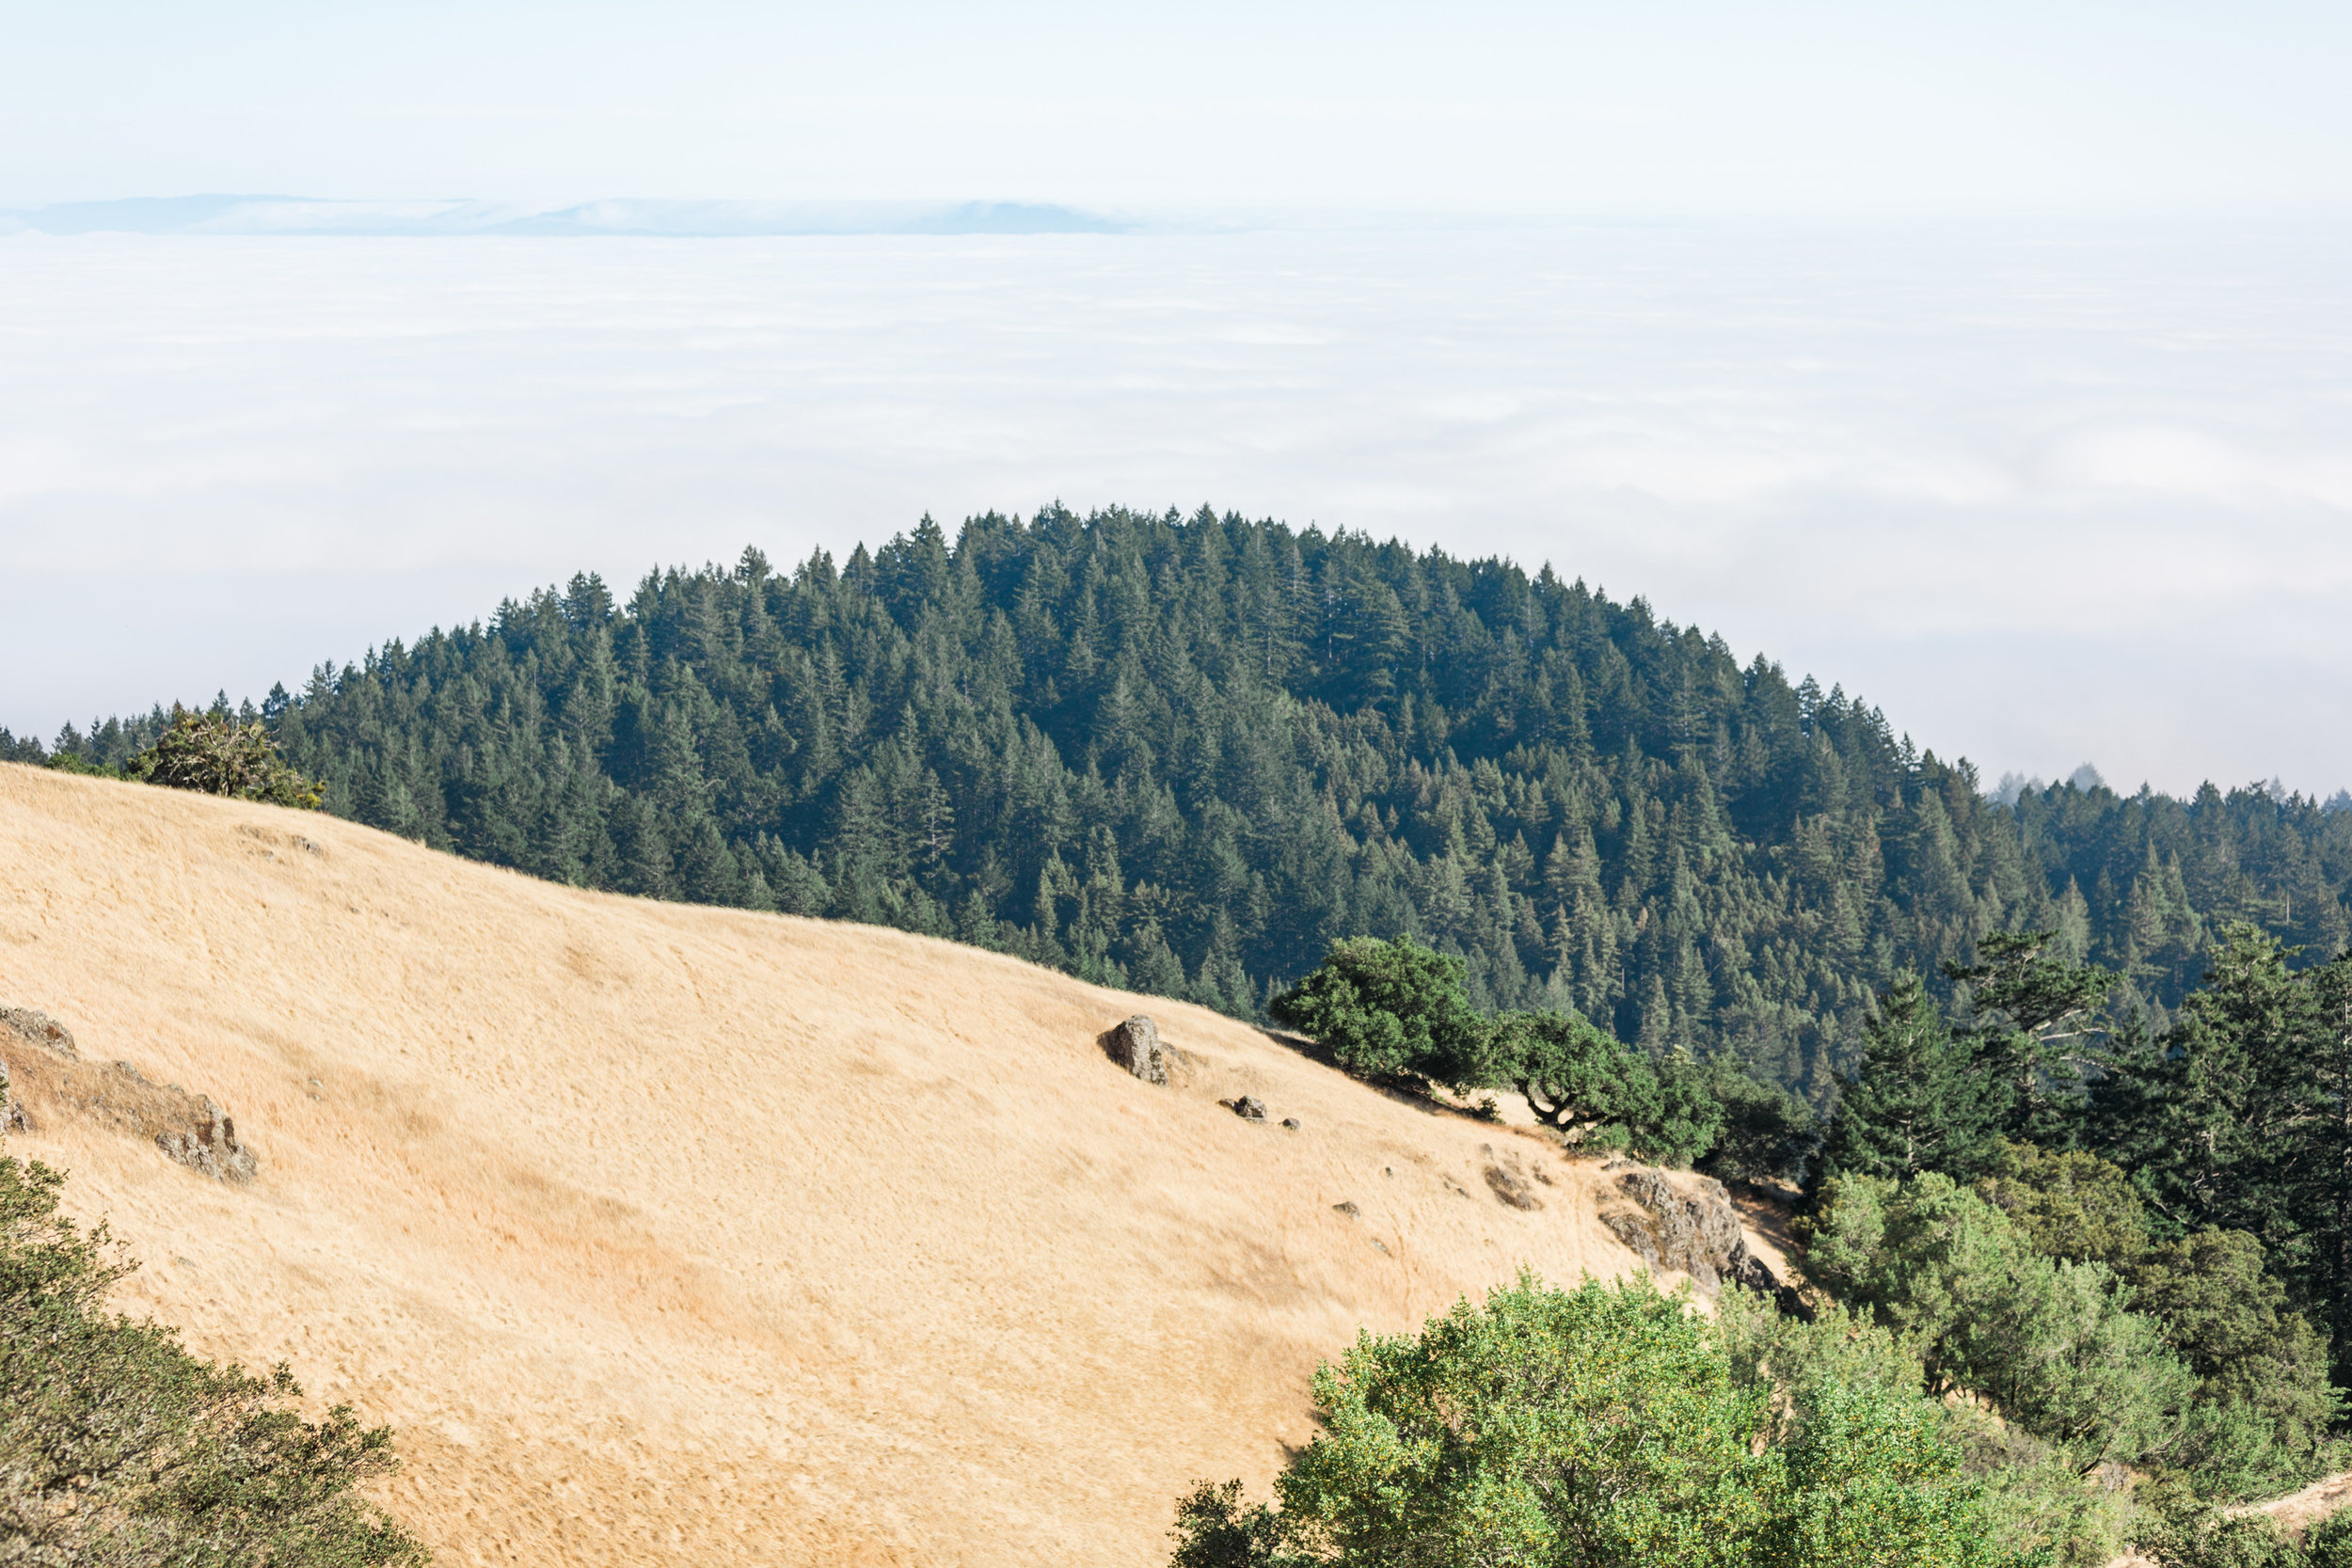 Fog settling over the city. View from the top of Mount Tamalpais in Mill Valley, CA